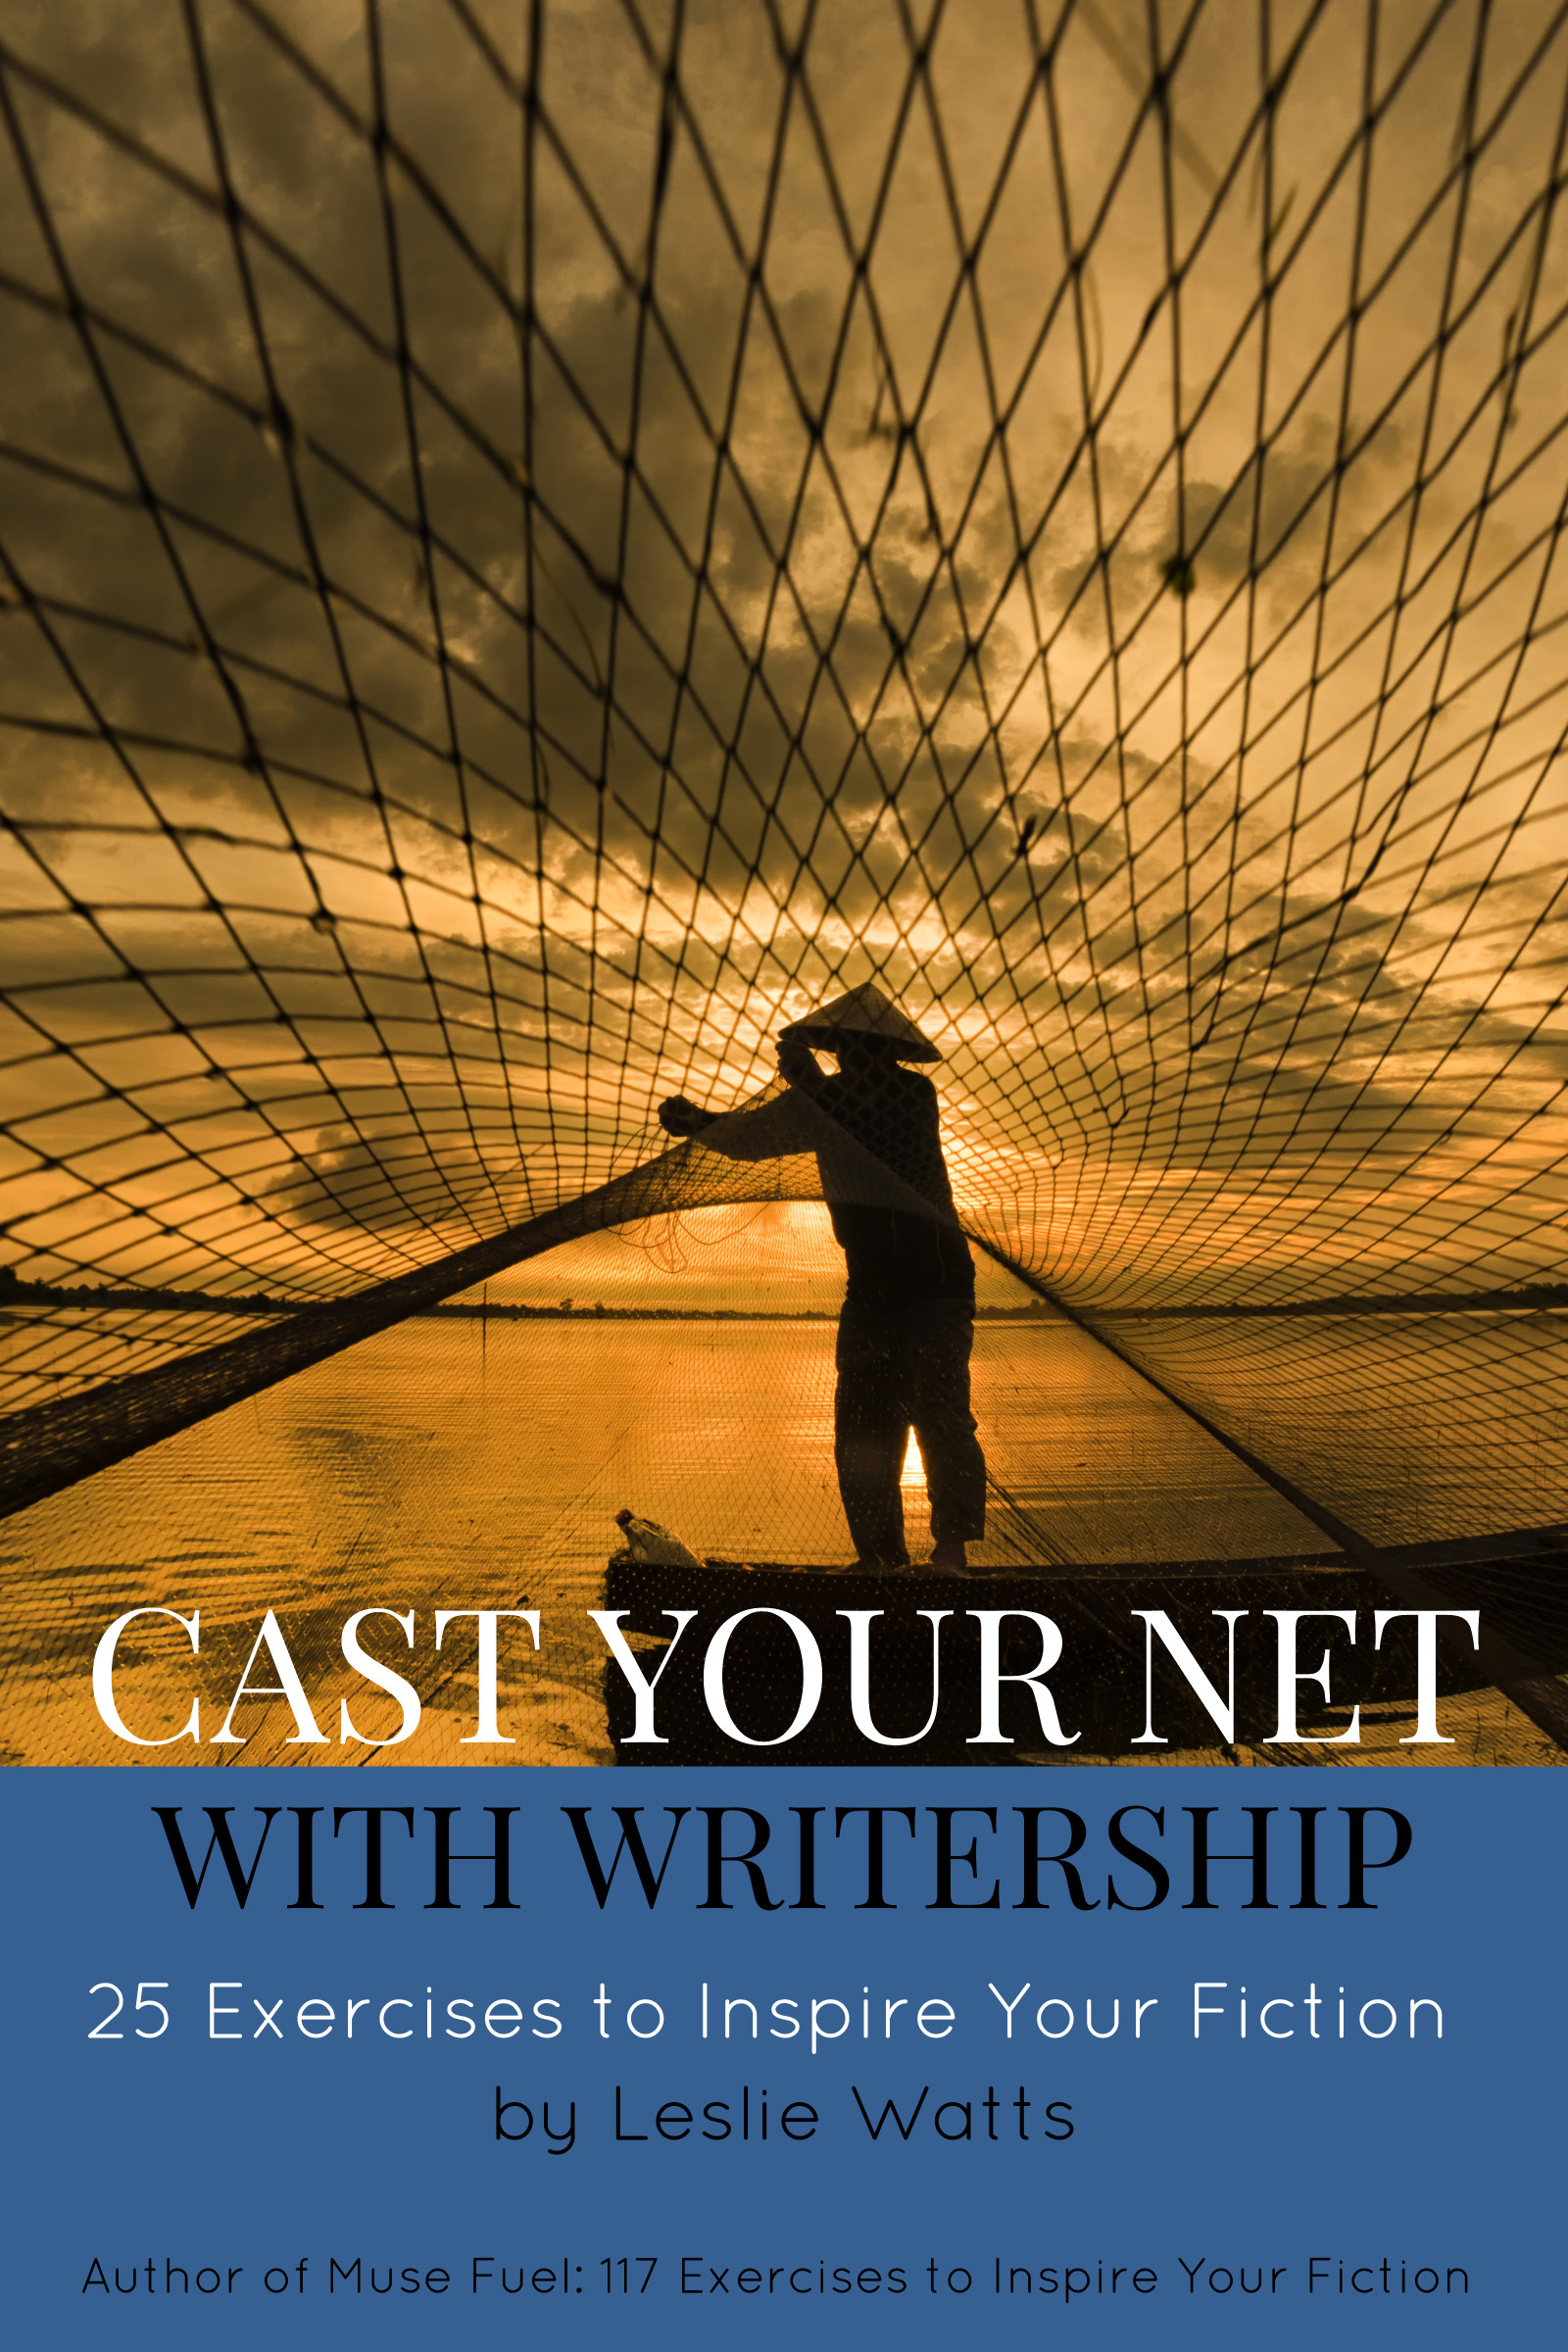 Cast Your Net w  ith Writership: 25 Exercises to Inspire Your Fiction  by Leslie Watts.